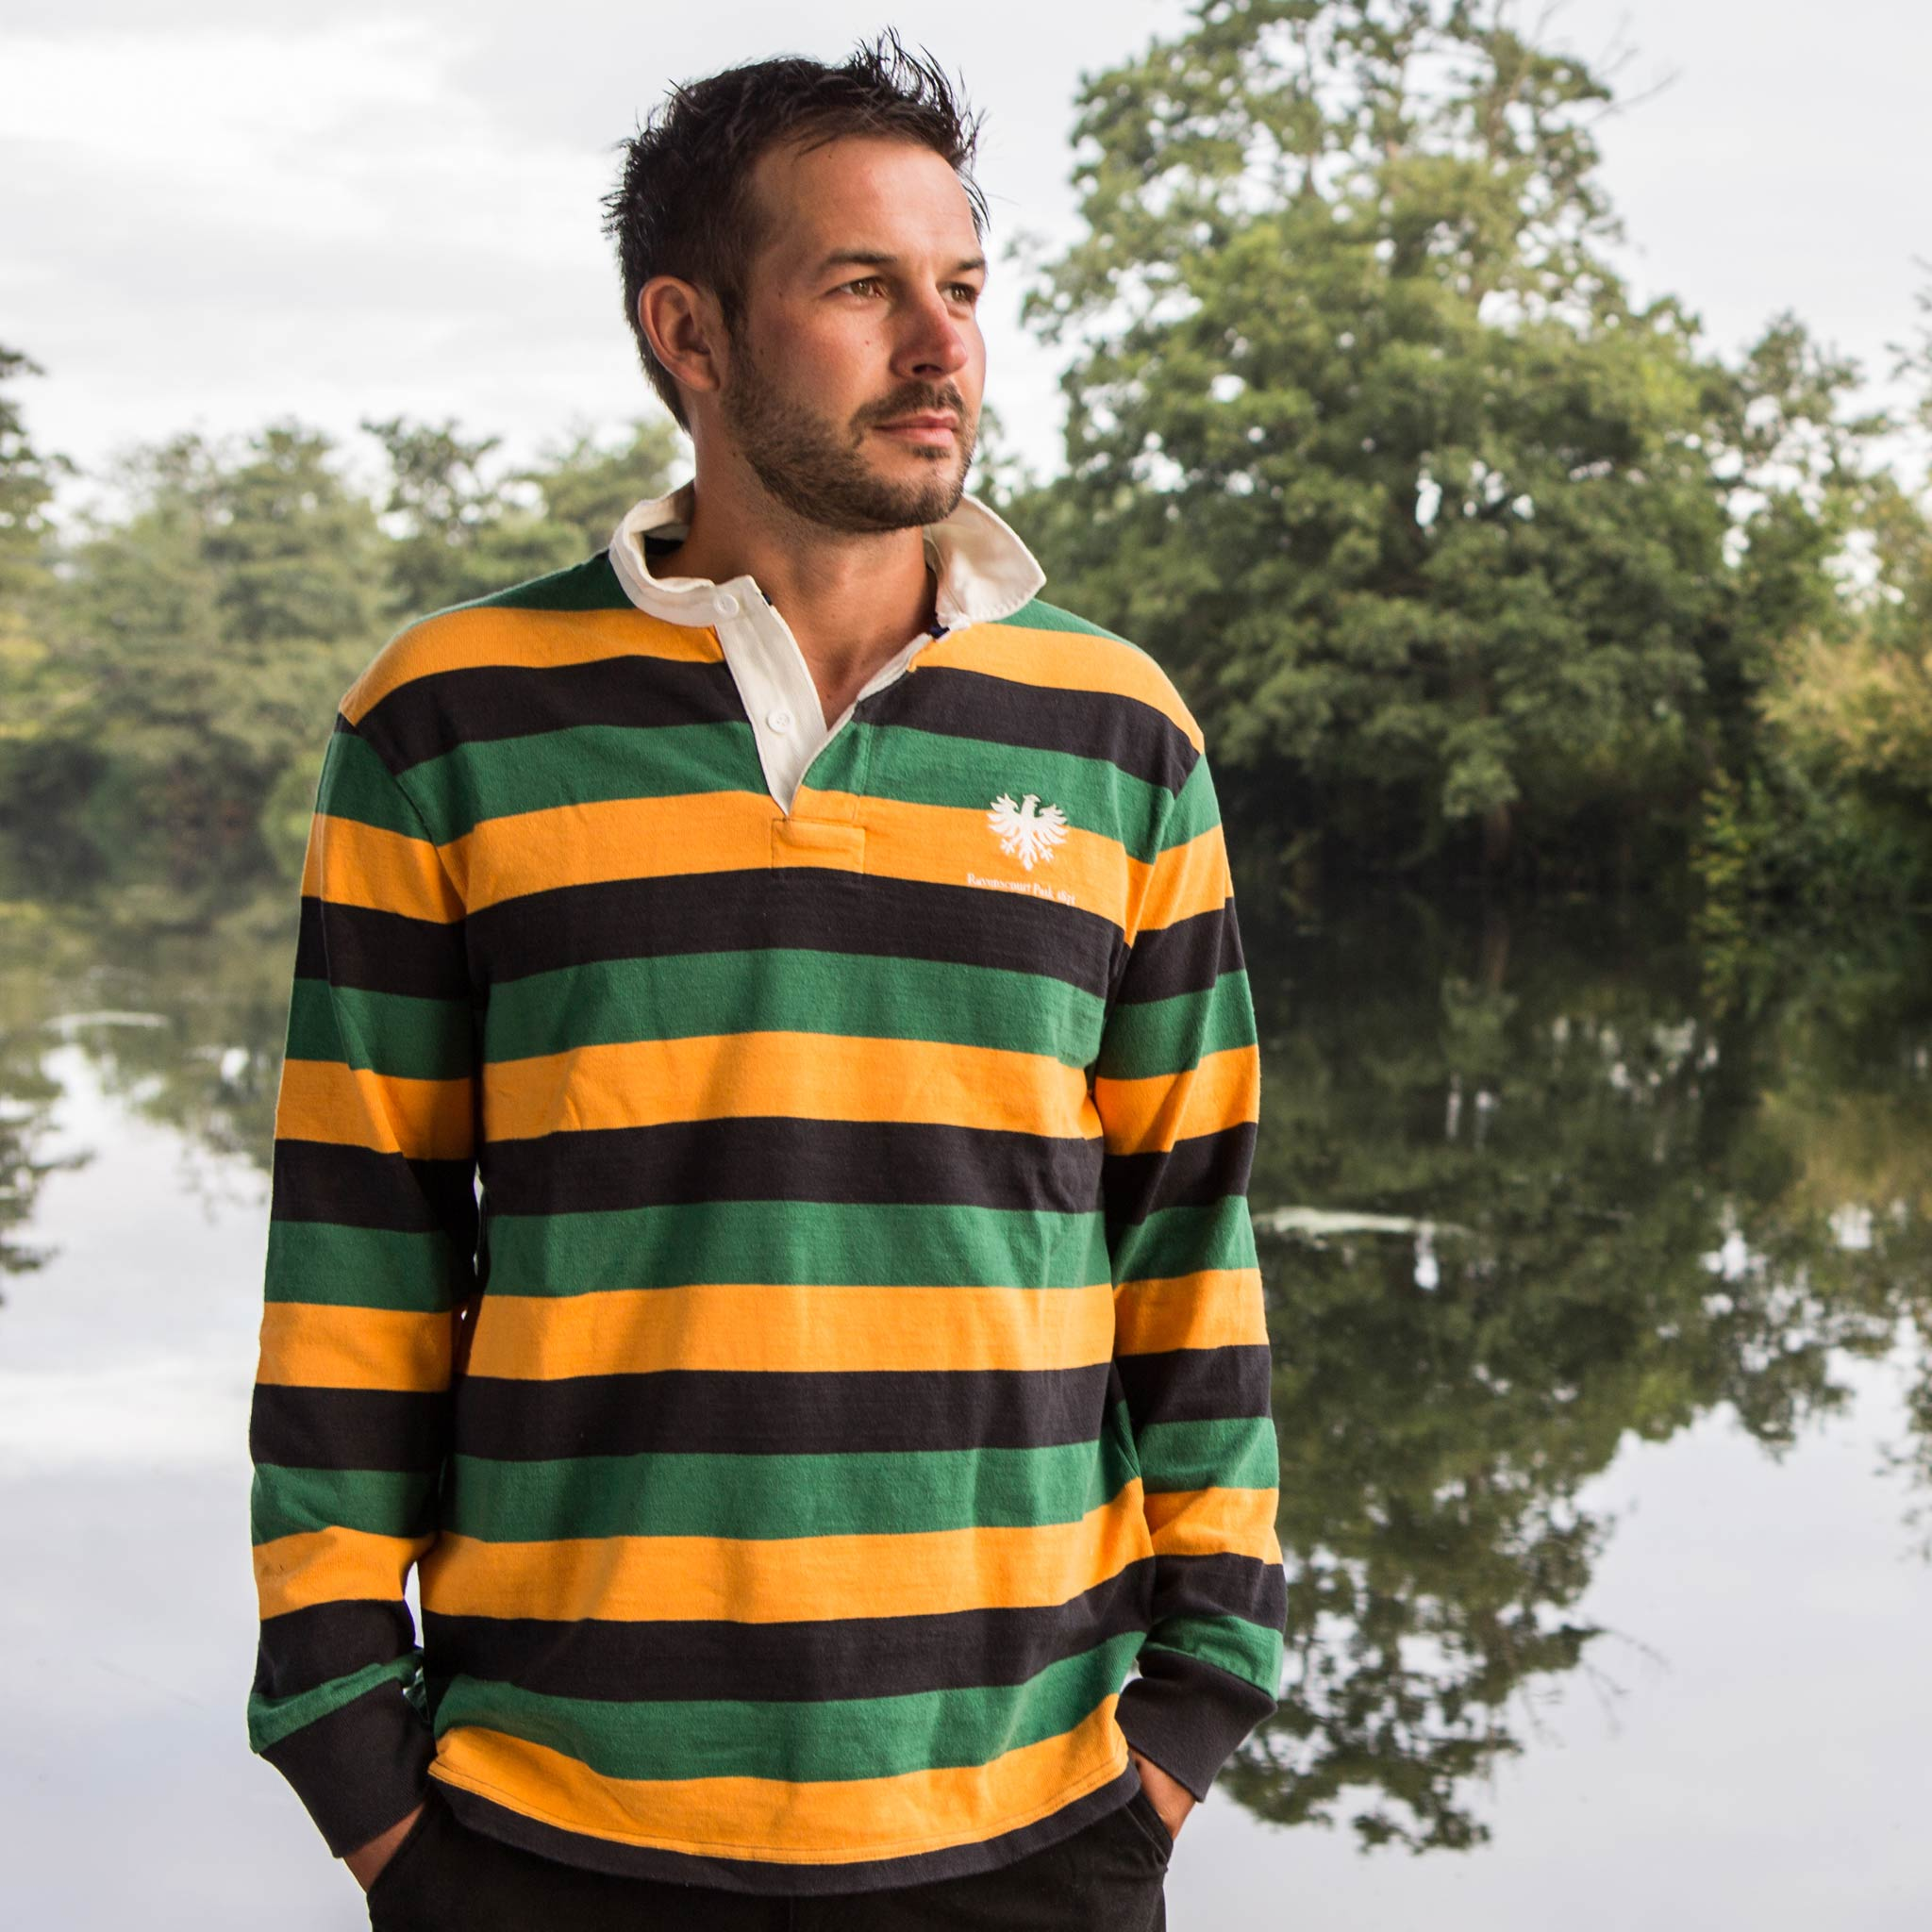 Ravenscourt Park 1871 Rugby Shirt - model